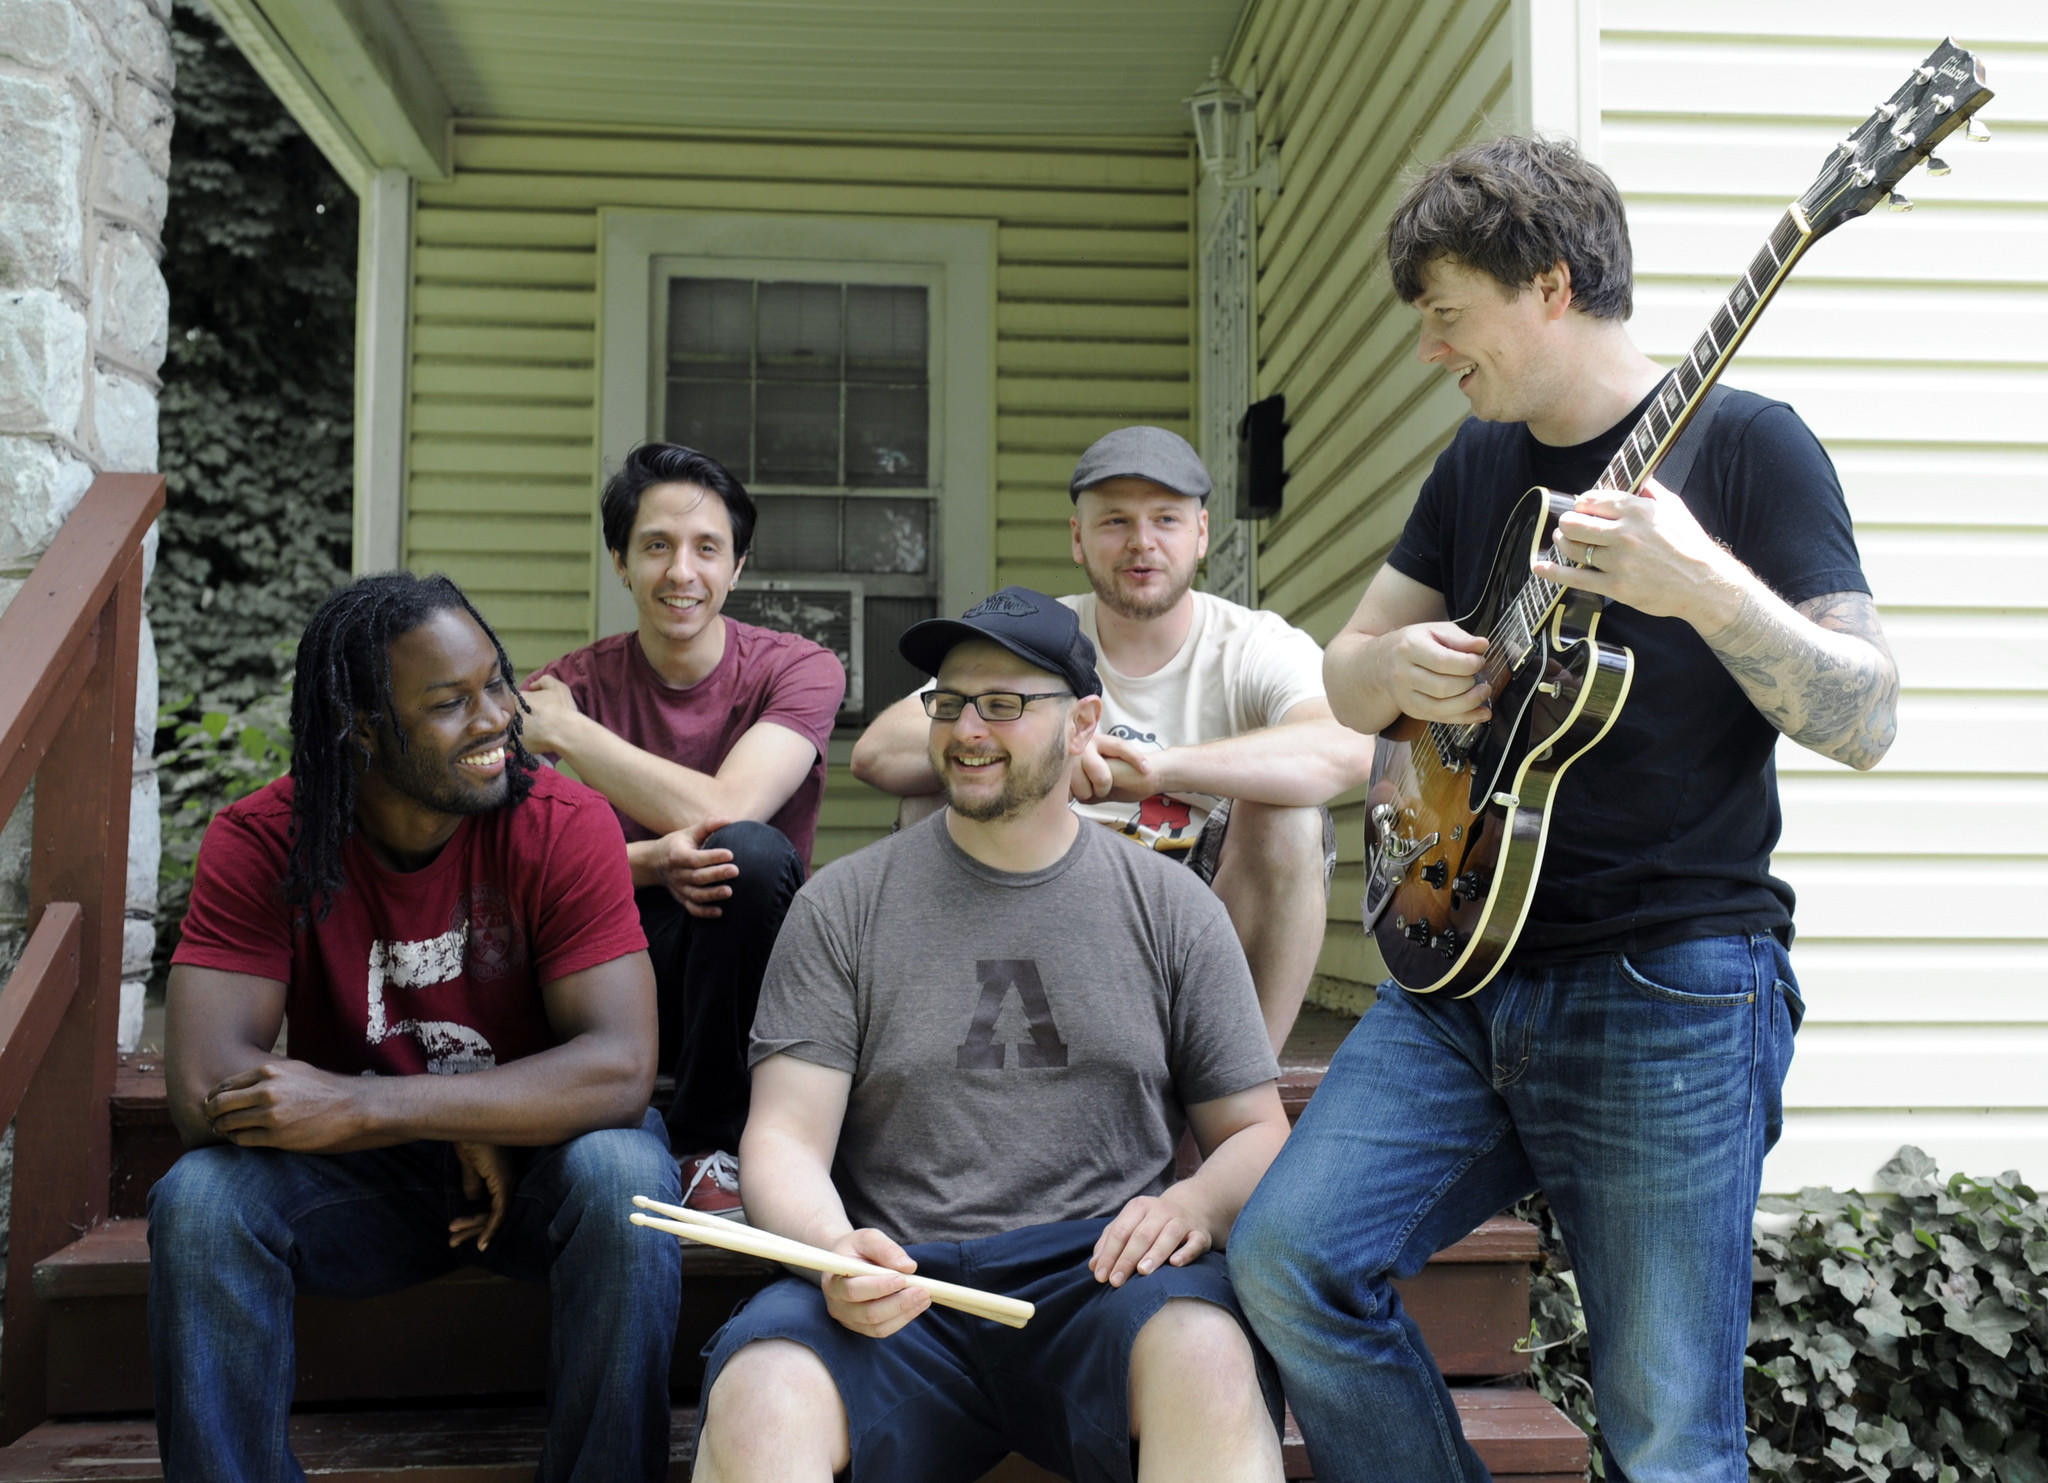 Vinny Vegas (L-R: Emmanuel Lee, Scott Siskind, Jason Cohen, Travis Lockhart and Earl Carter) pose in front of the band's practice space in Evesham Park.